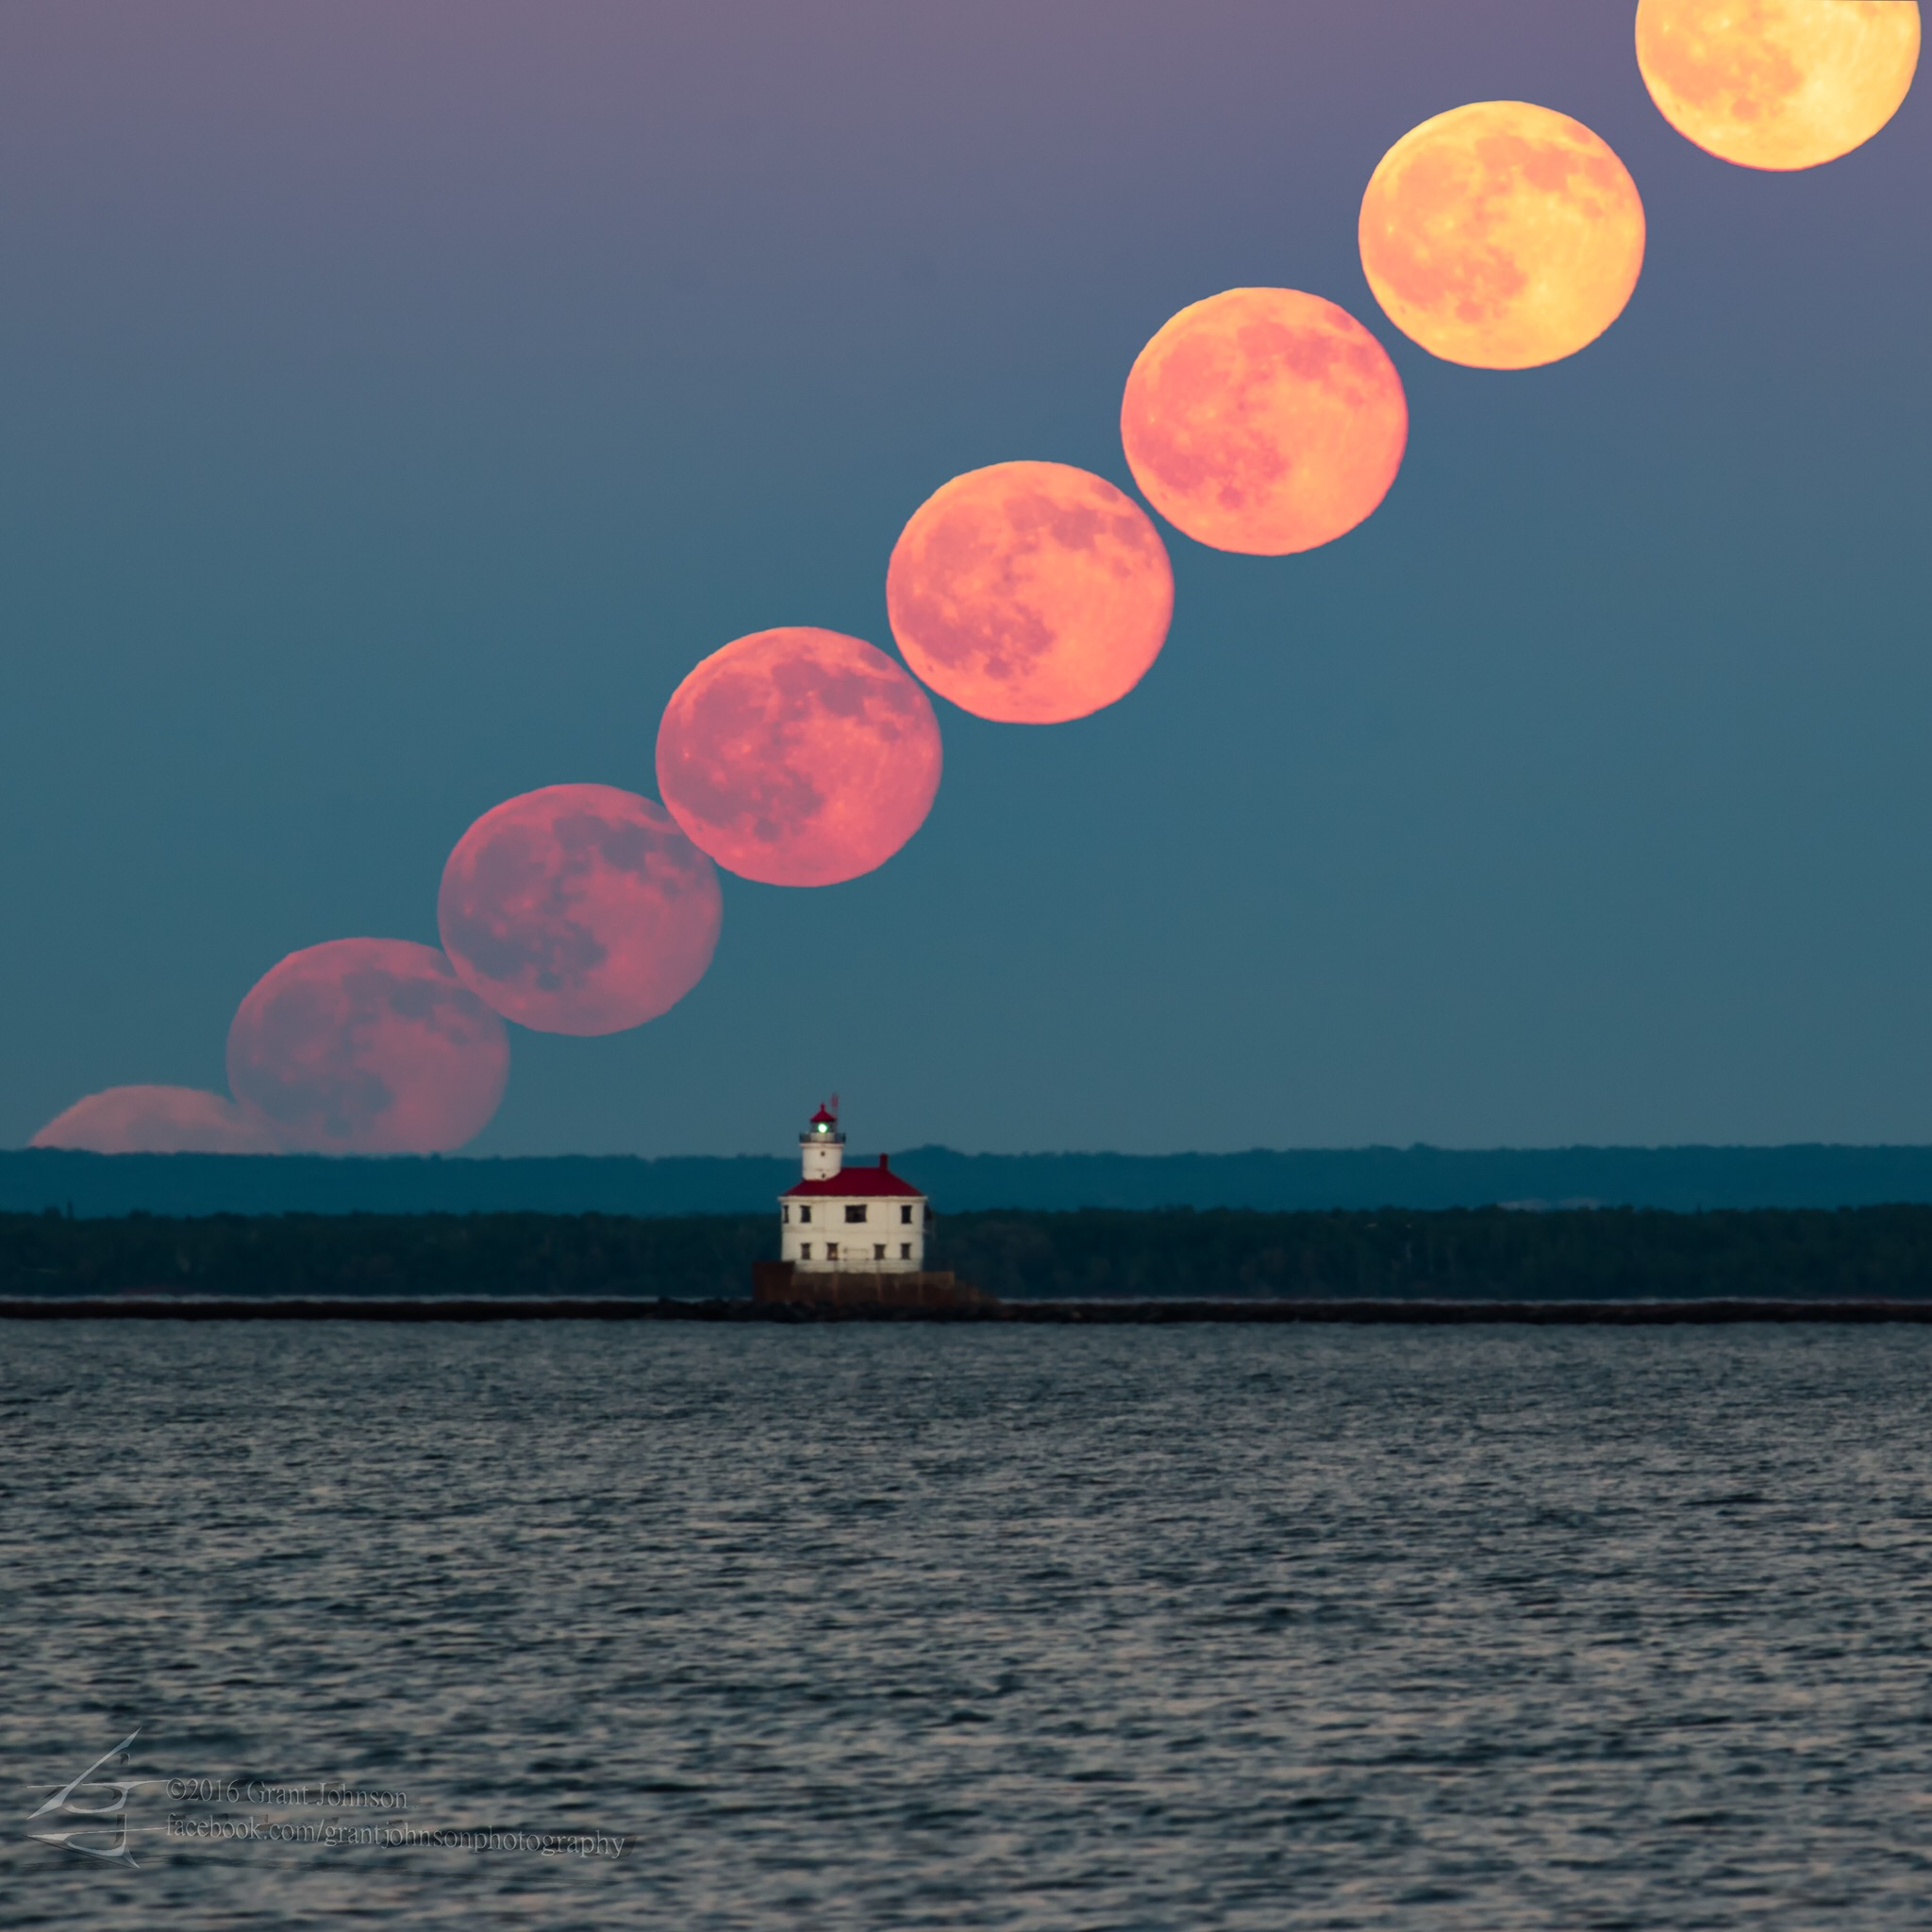 A series of shots of the full moon on June 20, 2016, taken from Duluth, Minnesota's Park Point beach. The Superior Entry Lighthouse can be seen in the foreground.